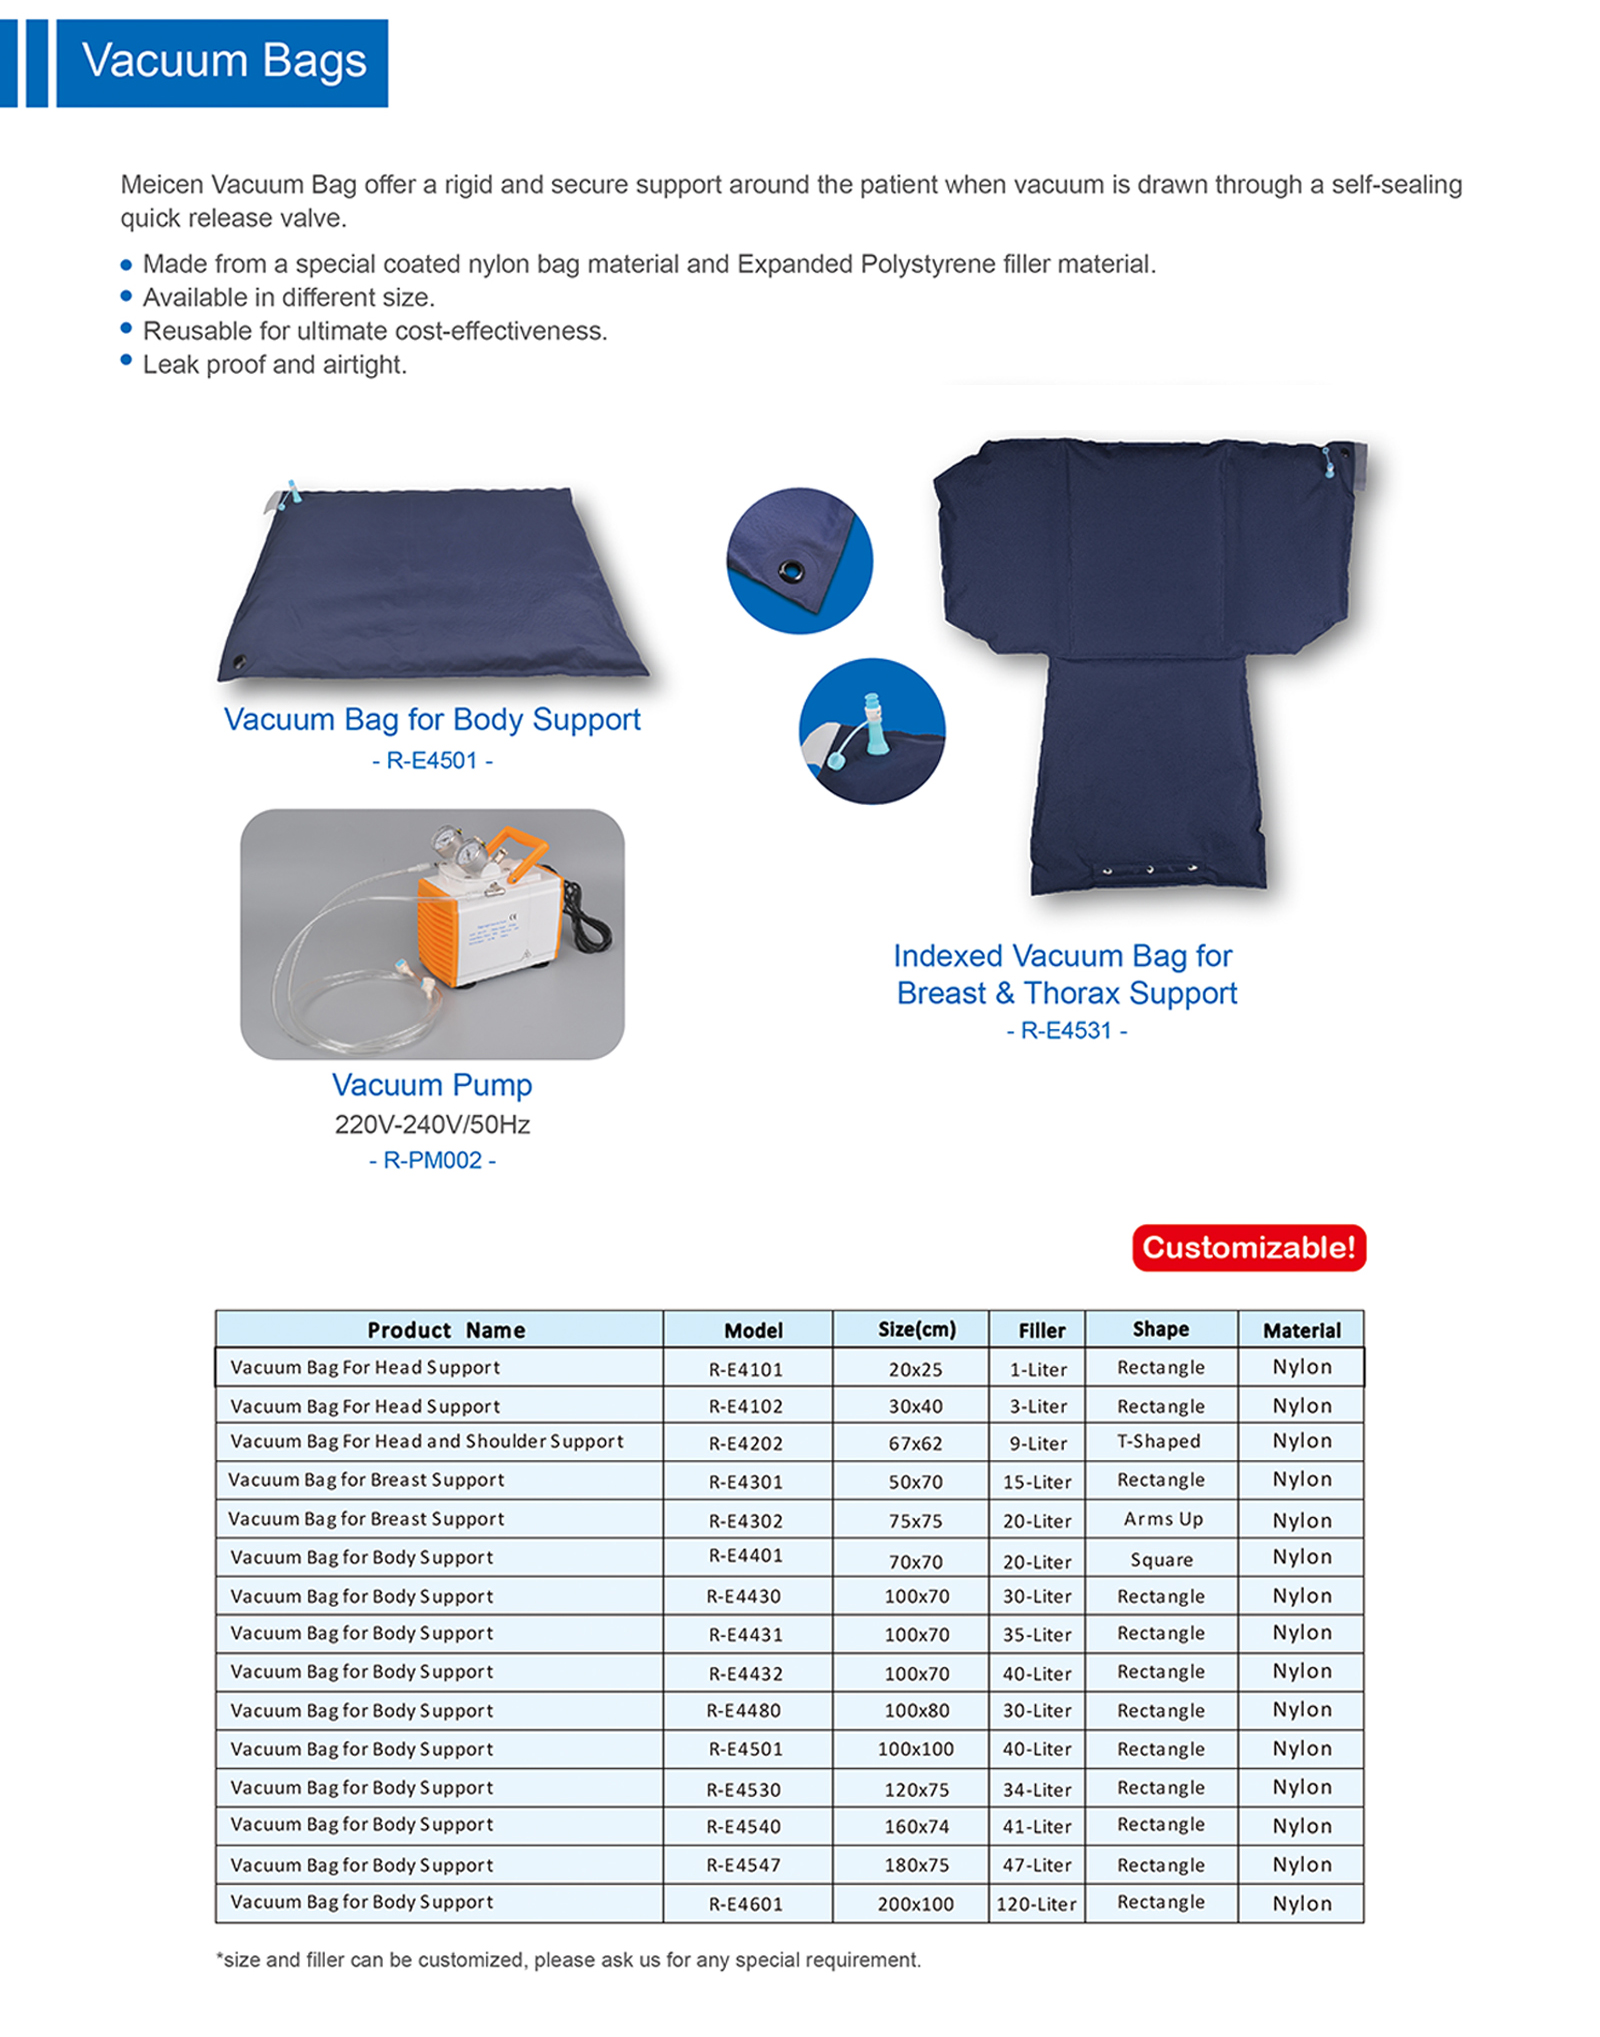 Meicen Vacuum Bag for Body Support for Radiotherapy Thermoplastic Positioning